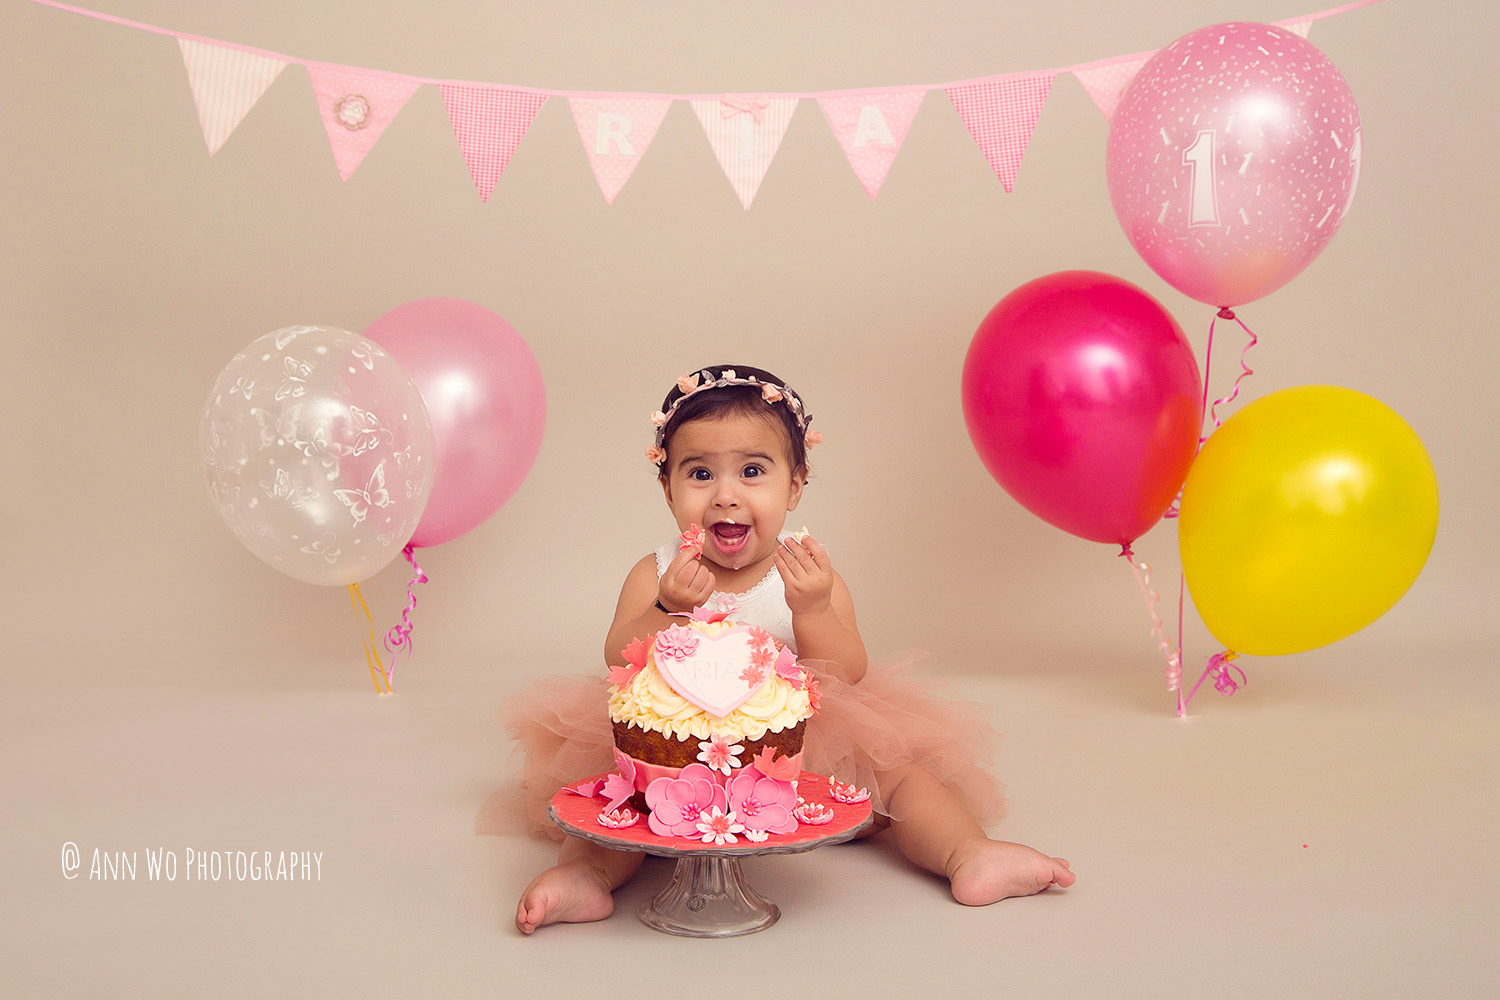 cake-smash-ria-london-baby-photographer12.jpg